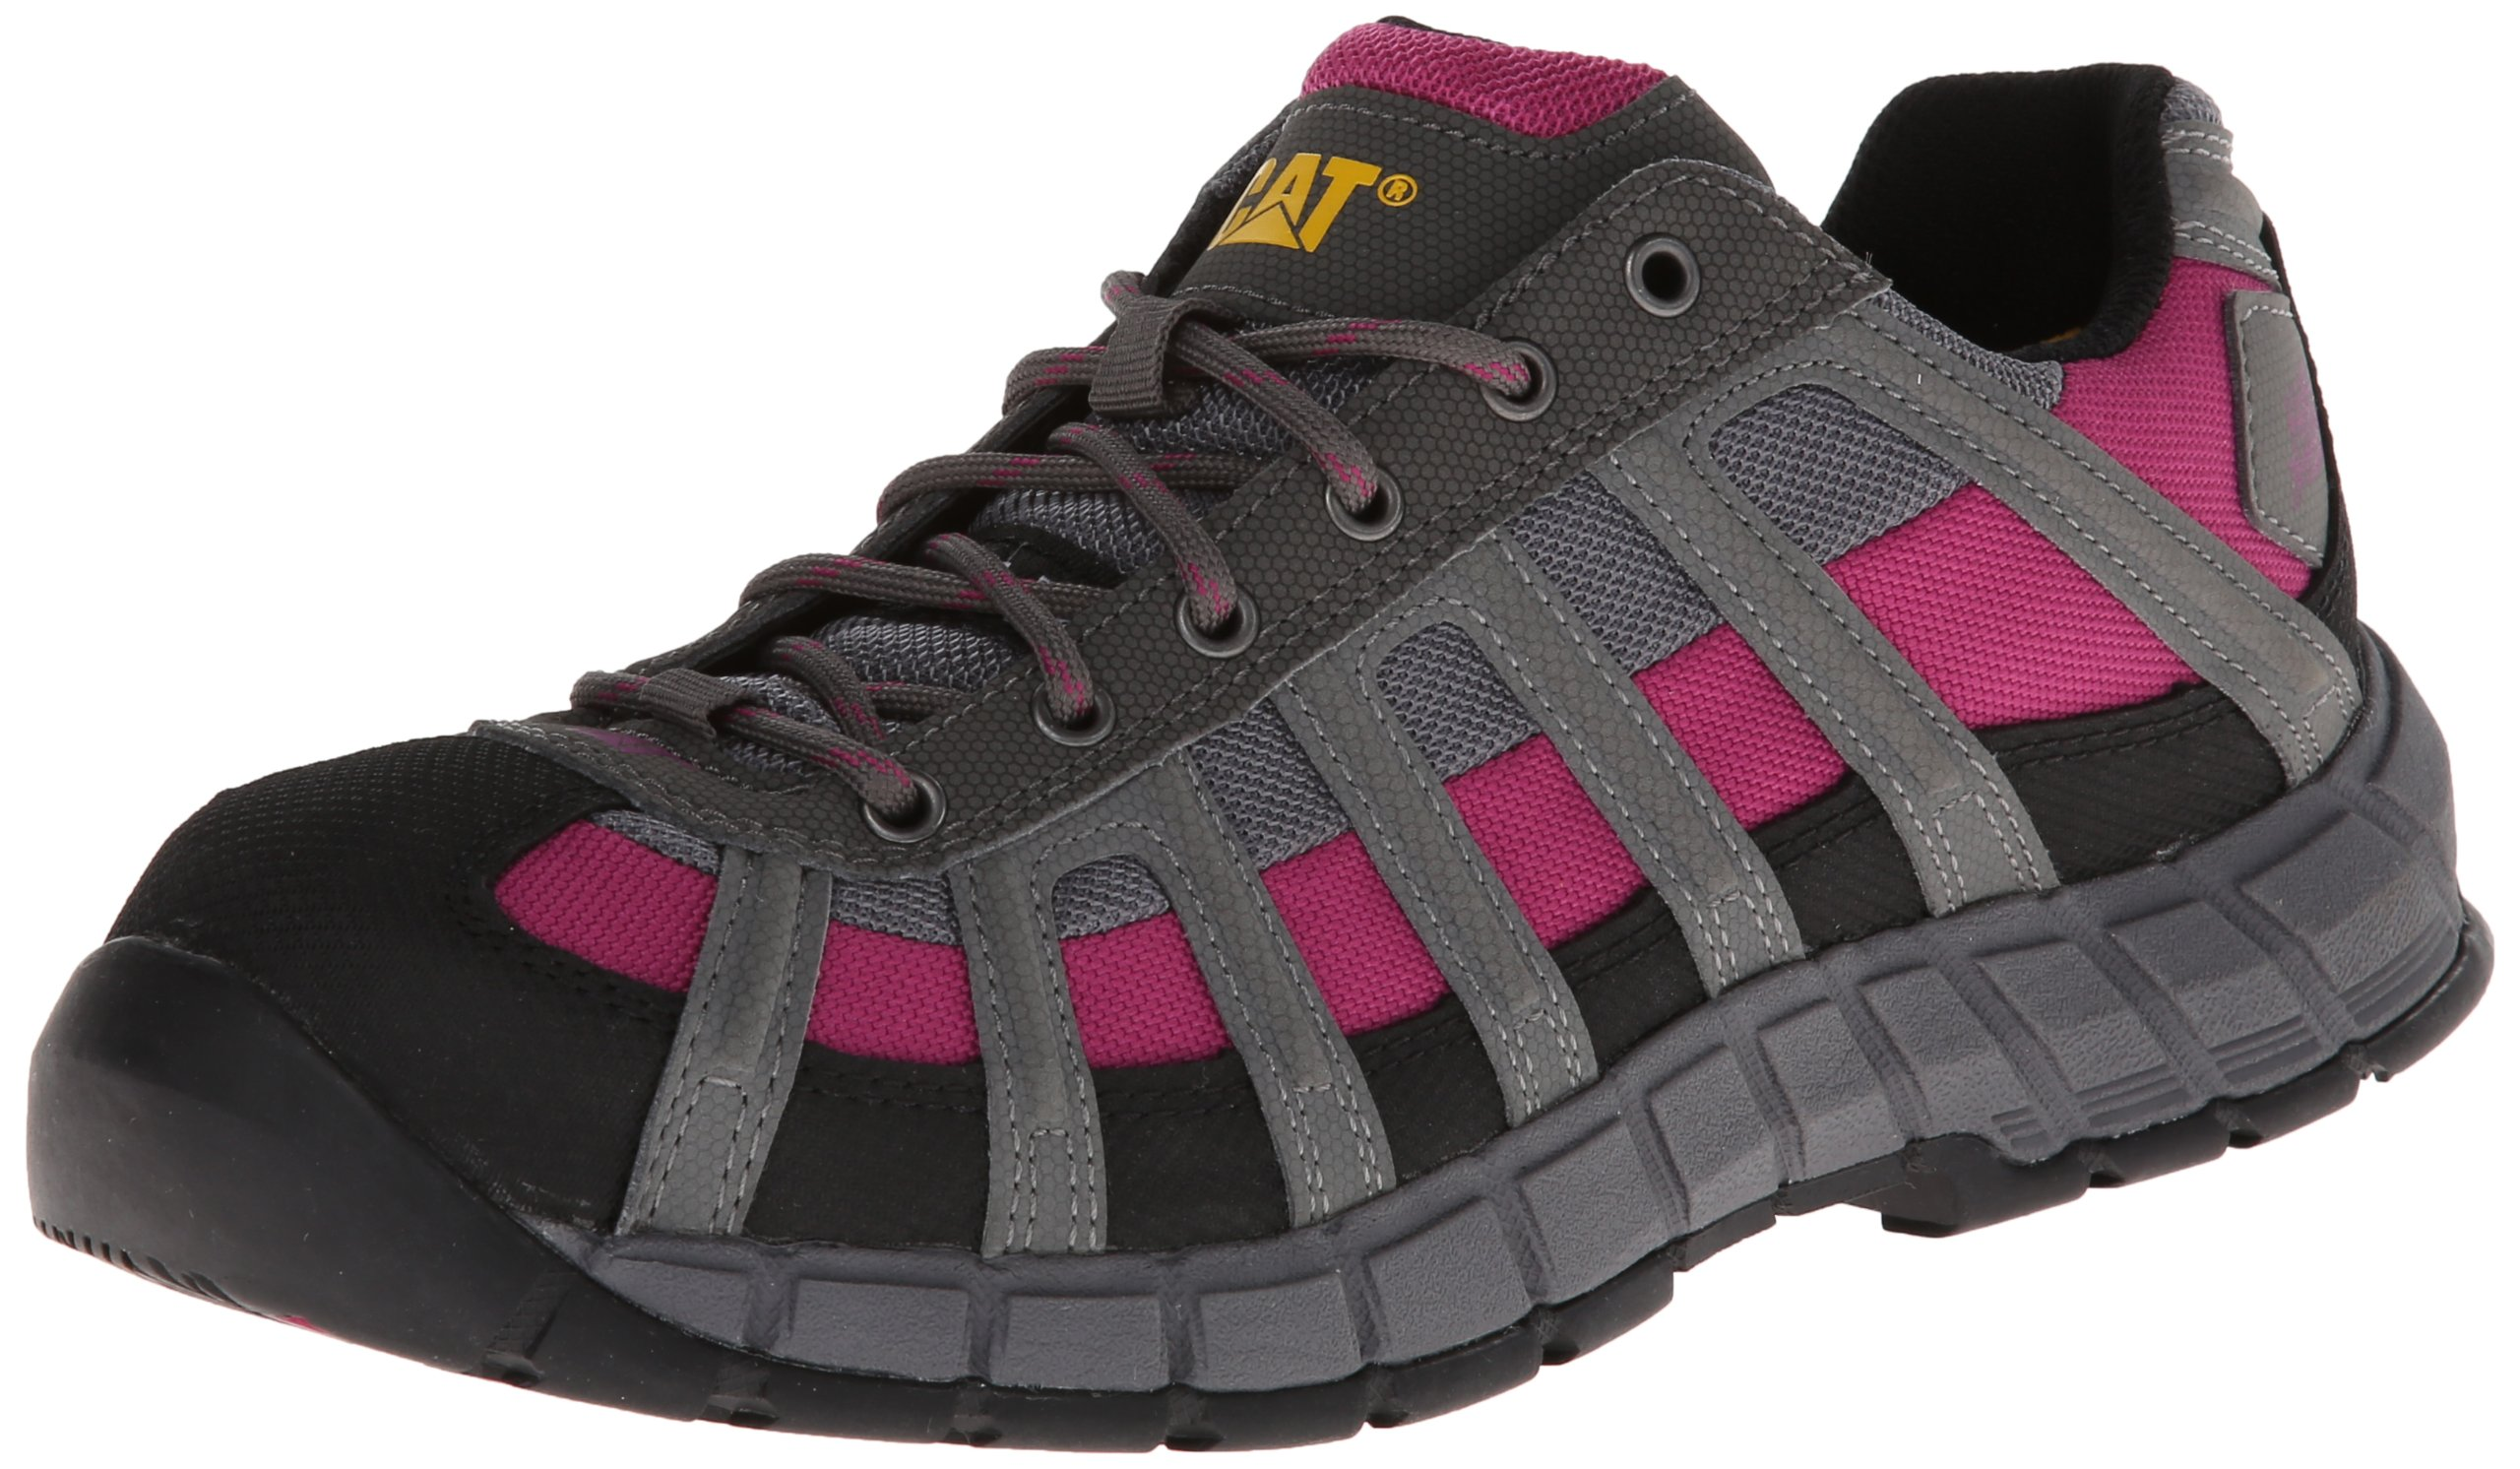 Caterpillar Women's Switch Steel Toe Work Shoe,Black/Baton Rouge,6 M US